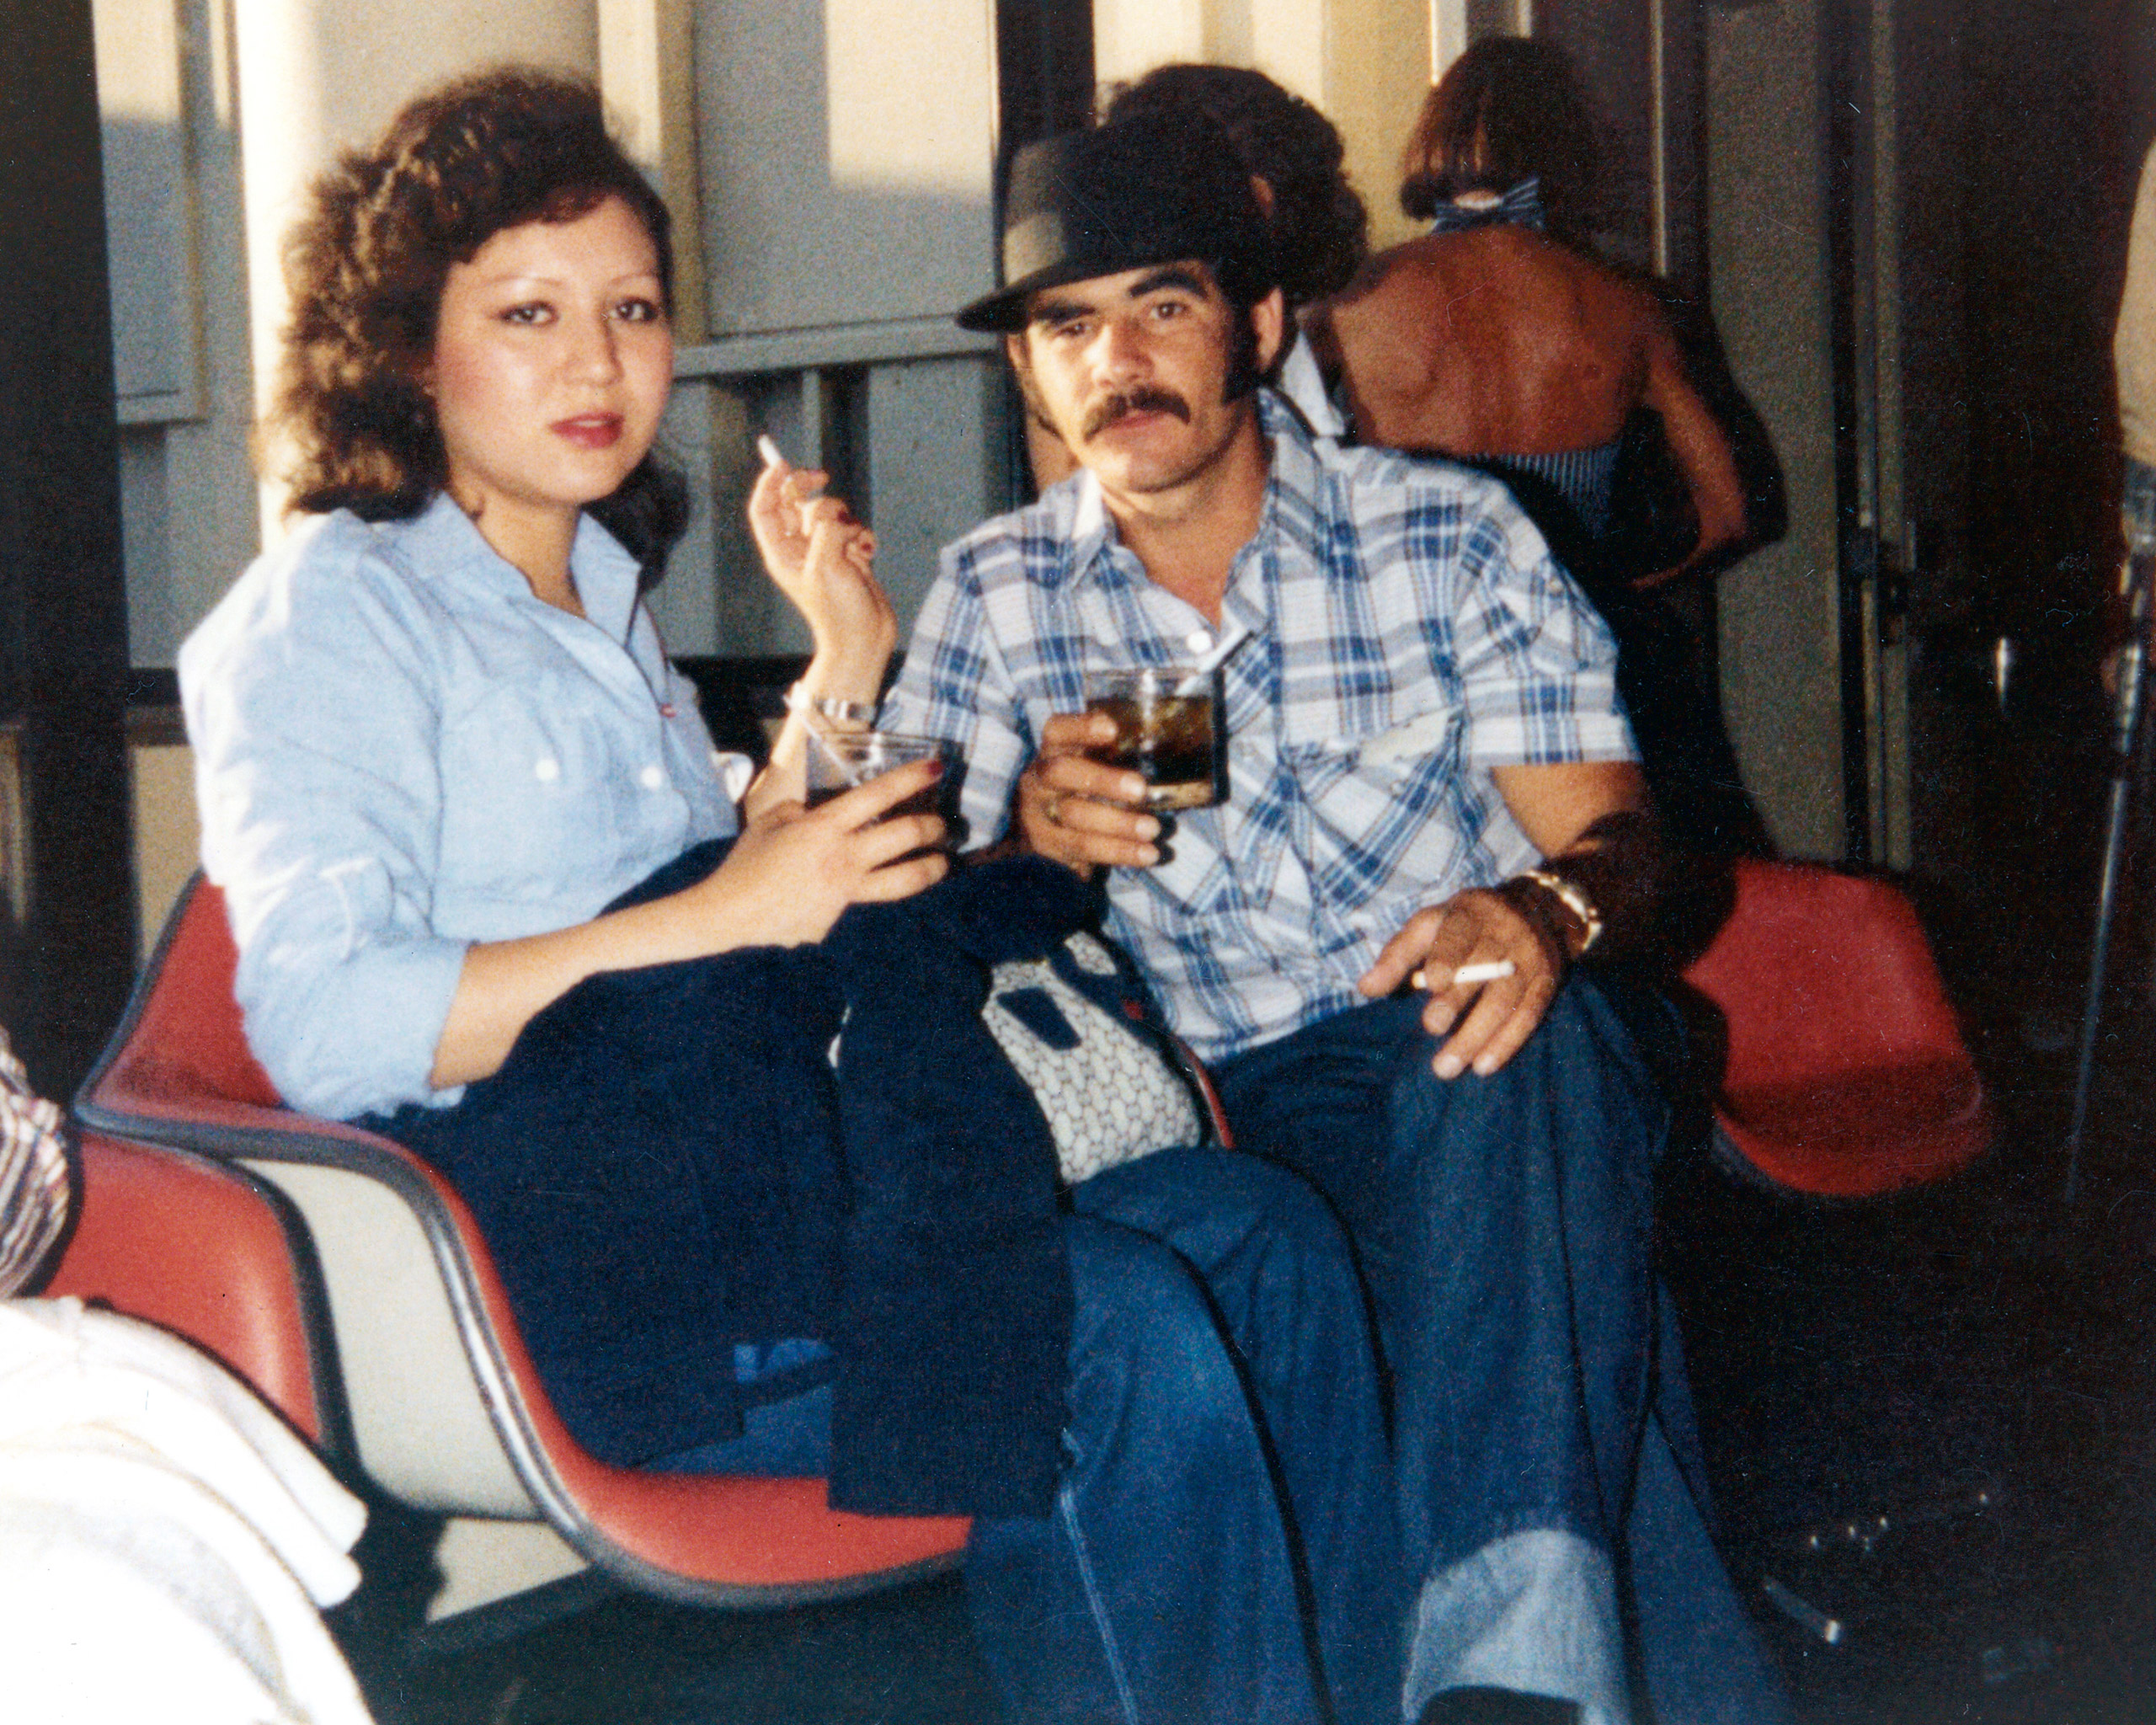 Silvio with a girlfriend in California. Silvio grew depressed and turned to drinking in the U.S. after leaving behind his wife and two daughters in Cuba. He says that Sira and Manuel Gonzalez and their children saved his life by welcoming him in California.